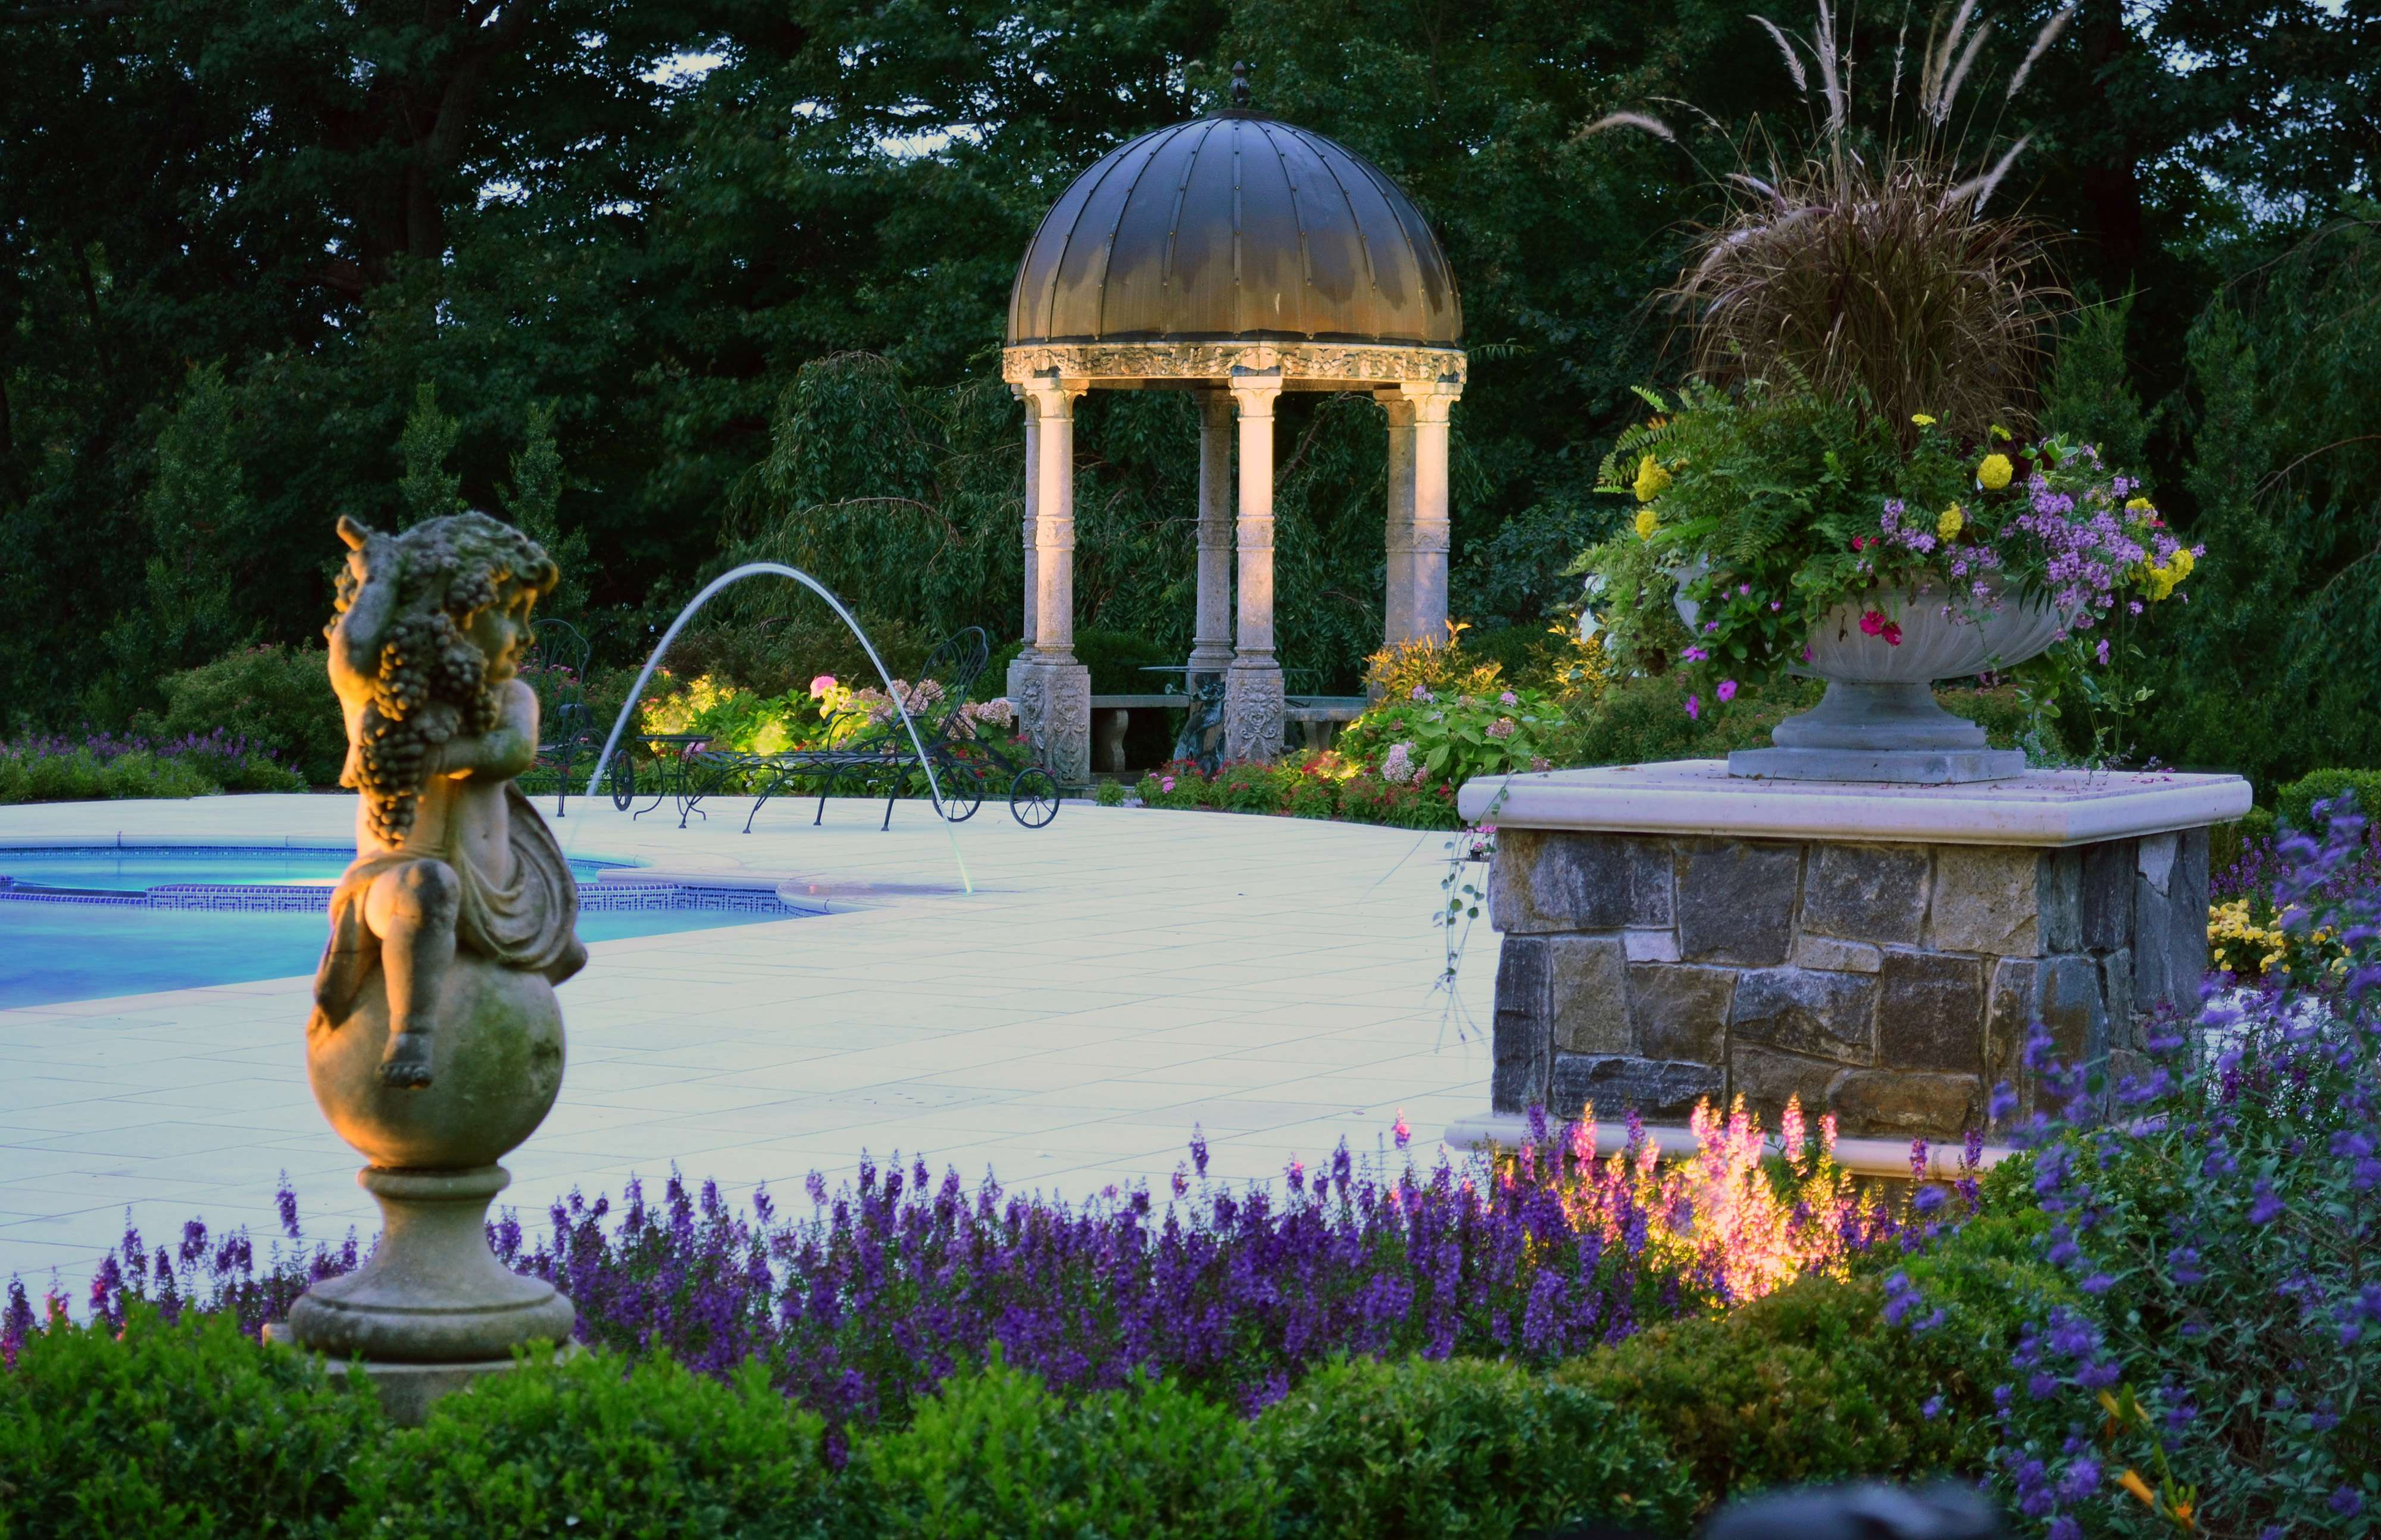 swimming pool landscaping ideas bergen county northern njaward winning swimming pool landscaping ideas by cipriano landscape design bergen county northern - Pool Landscaping